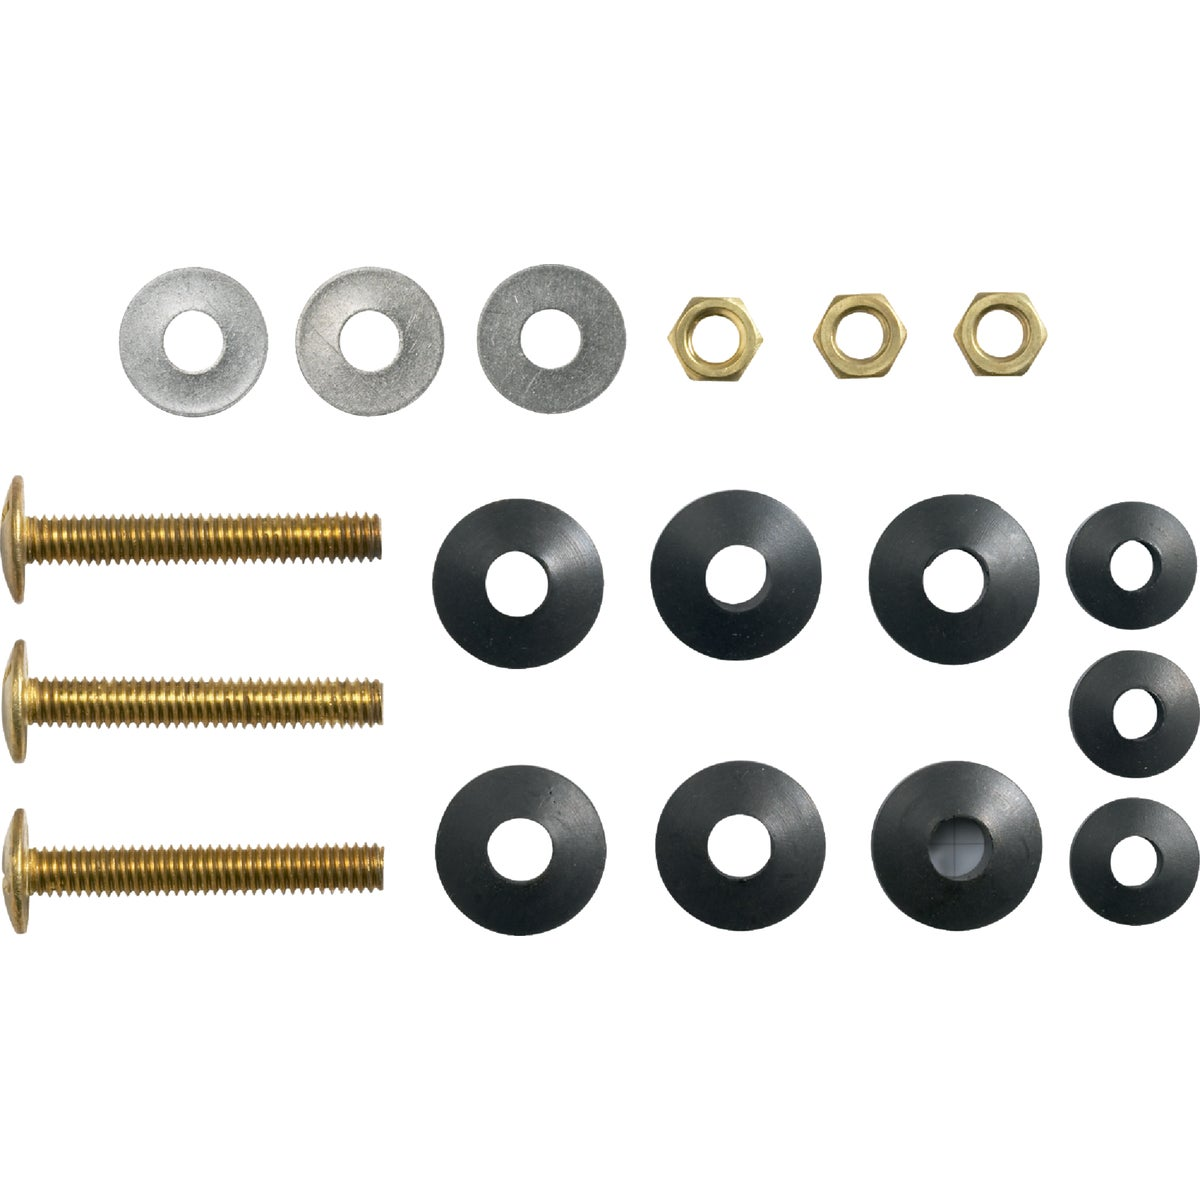 TANK BOLT ASSEMBLY KIT - GP52050 by Kohler Co